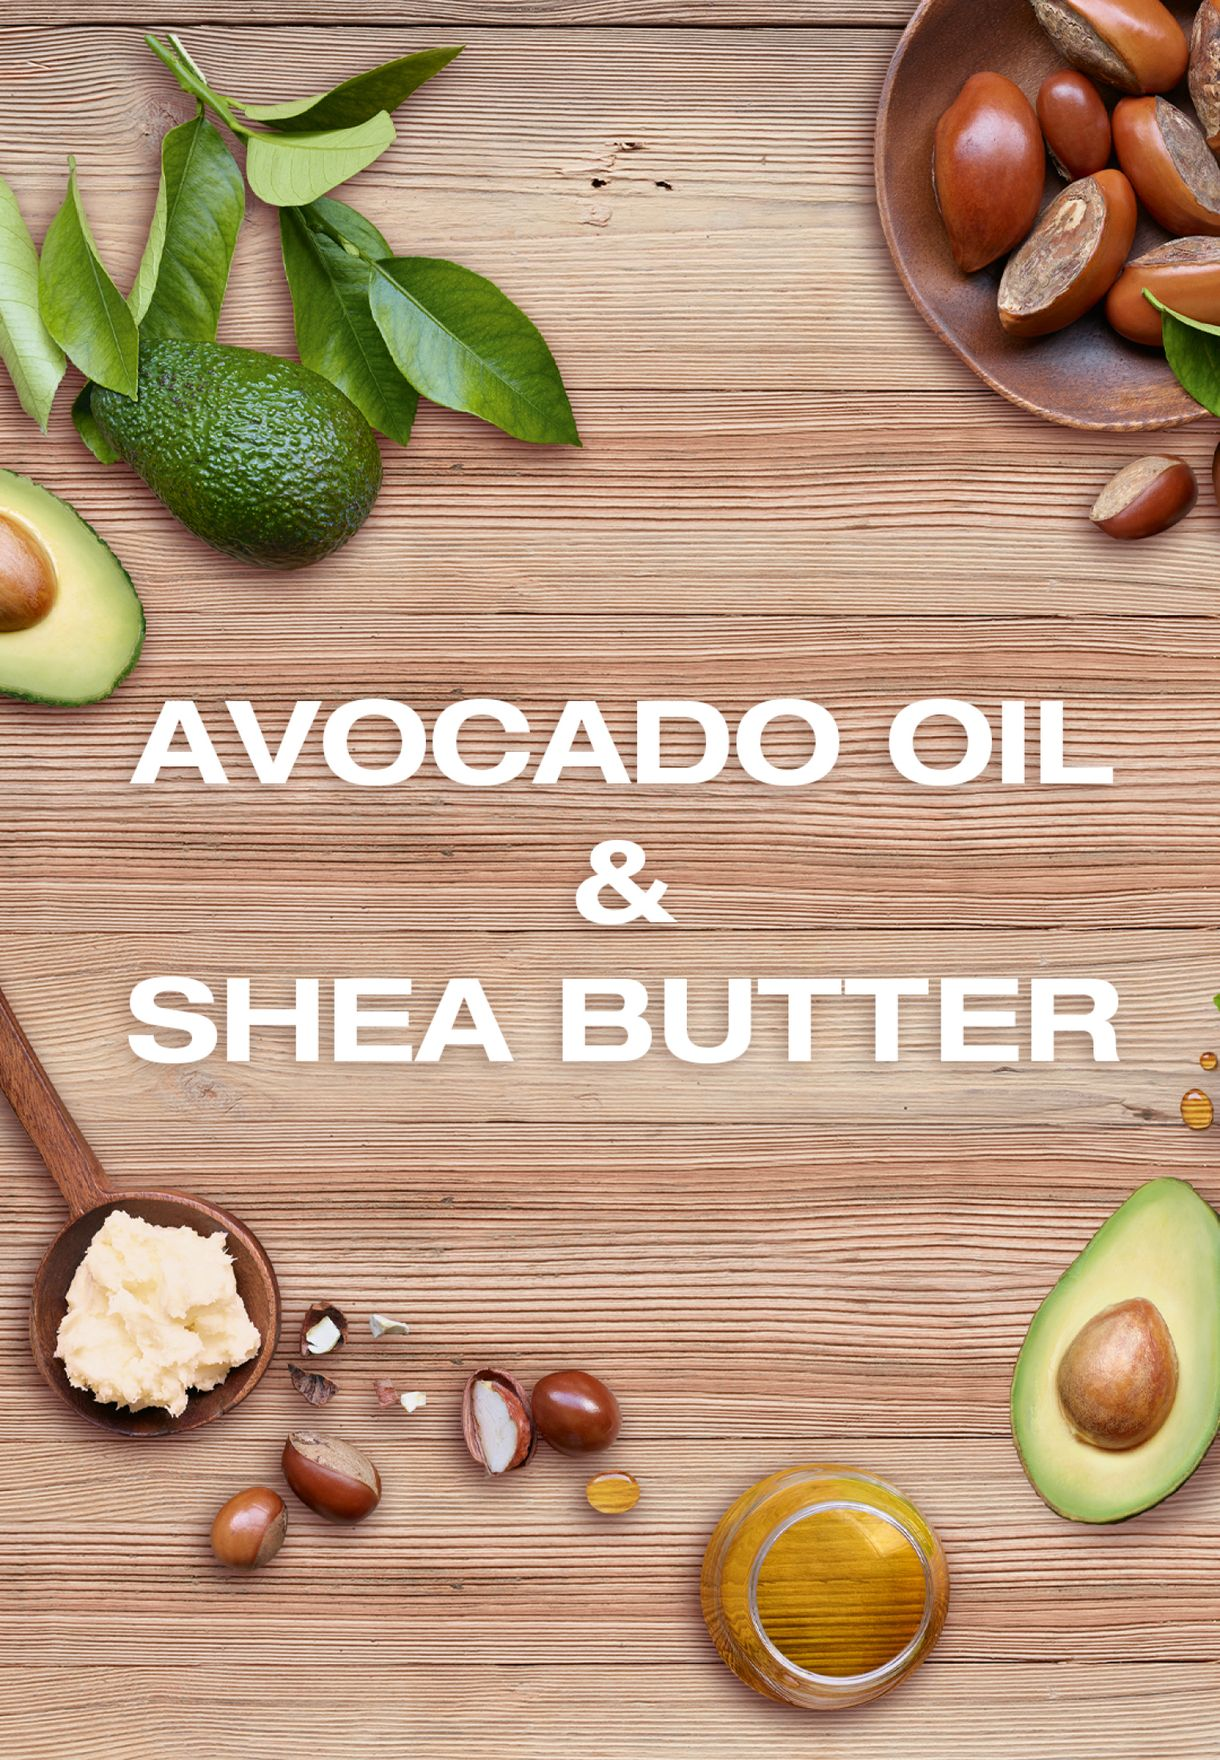 Avocado Oil & Shea Butter Leave-In Cream Saving, 30% Off 2x